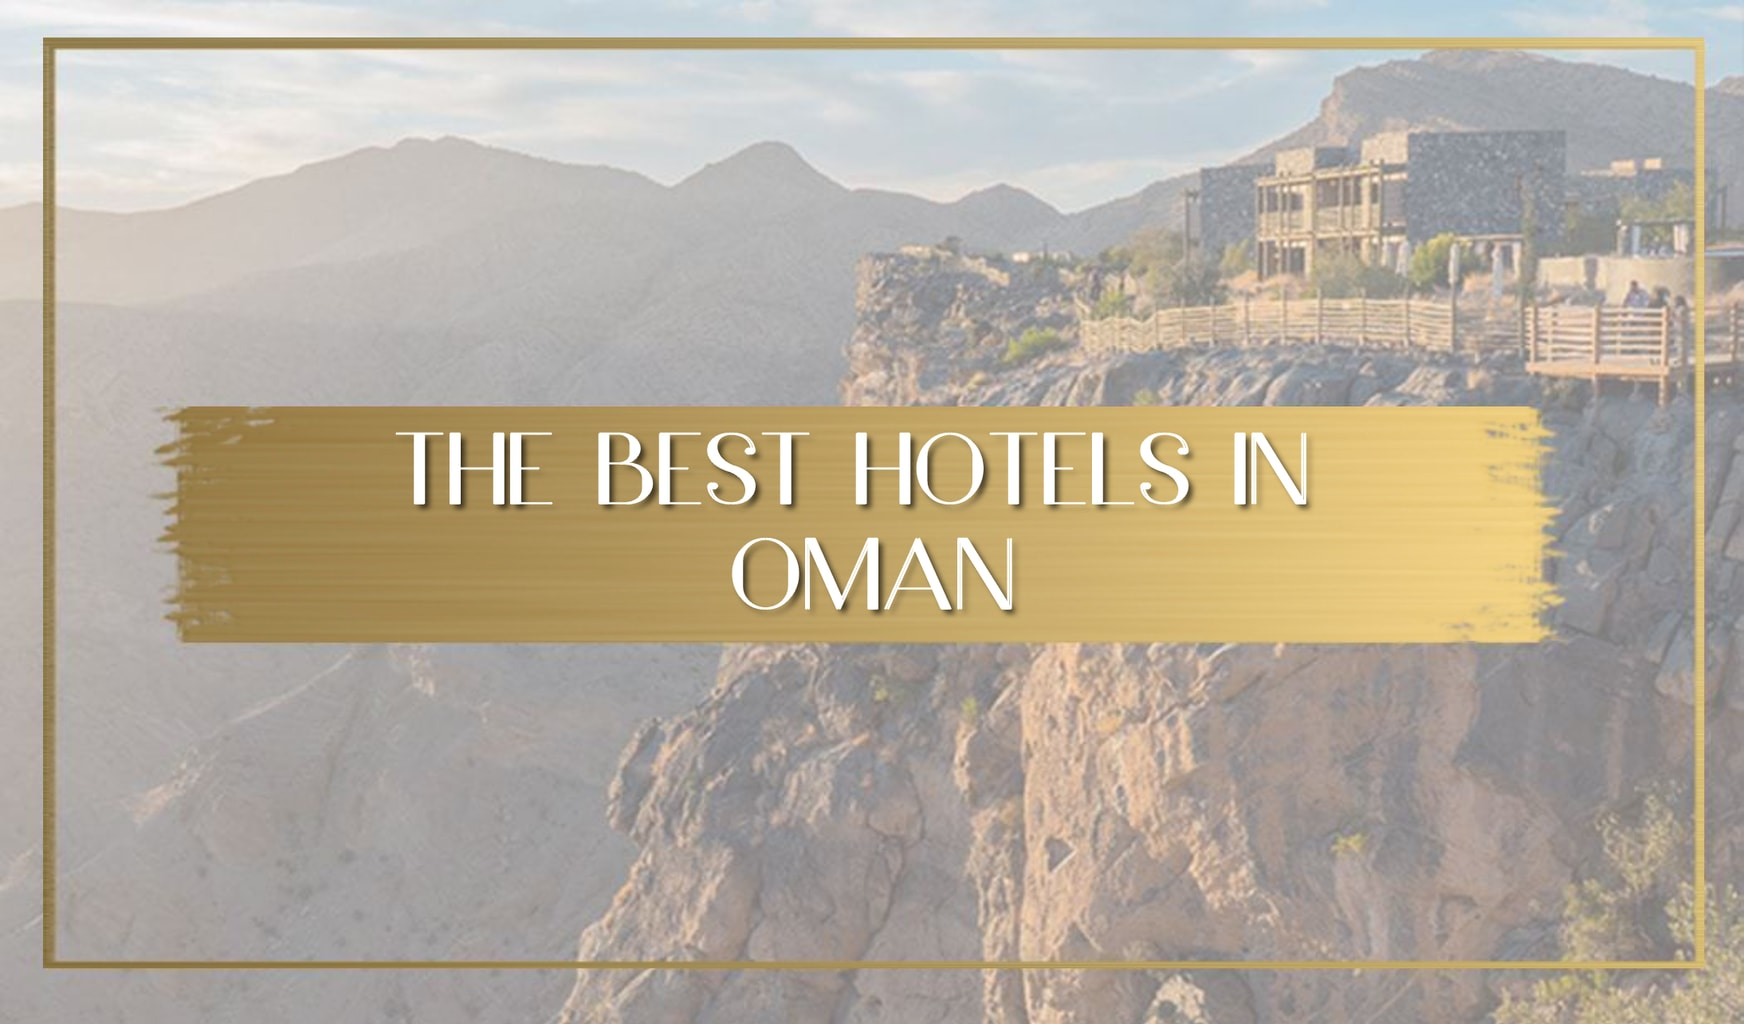 The best hotels in Oman main